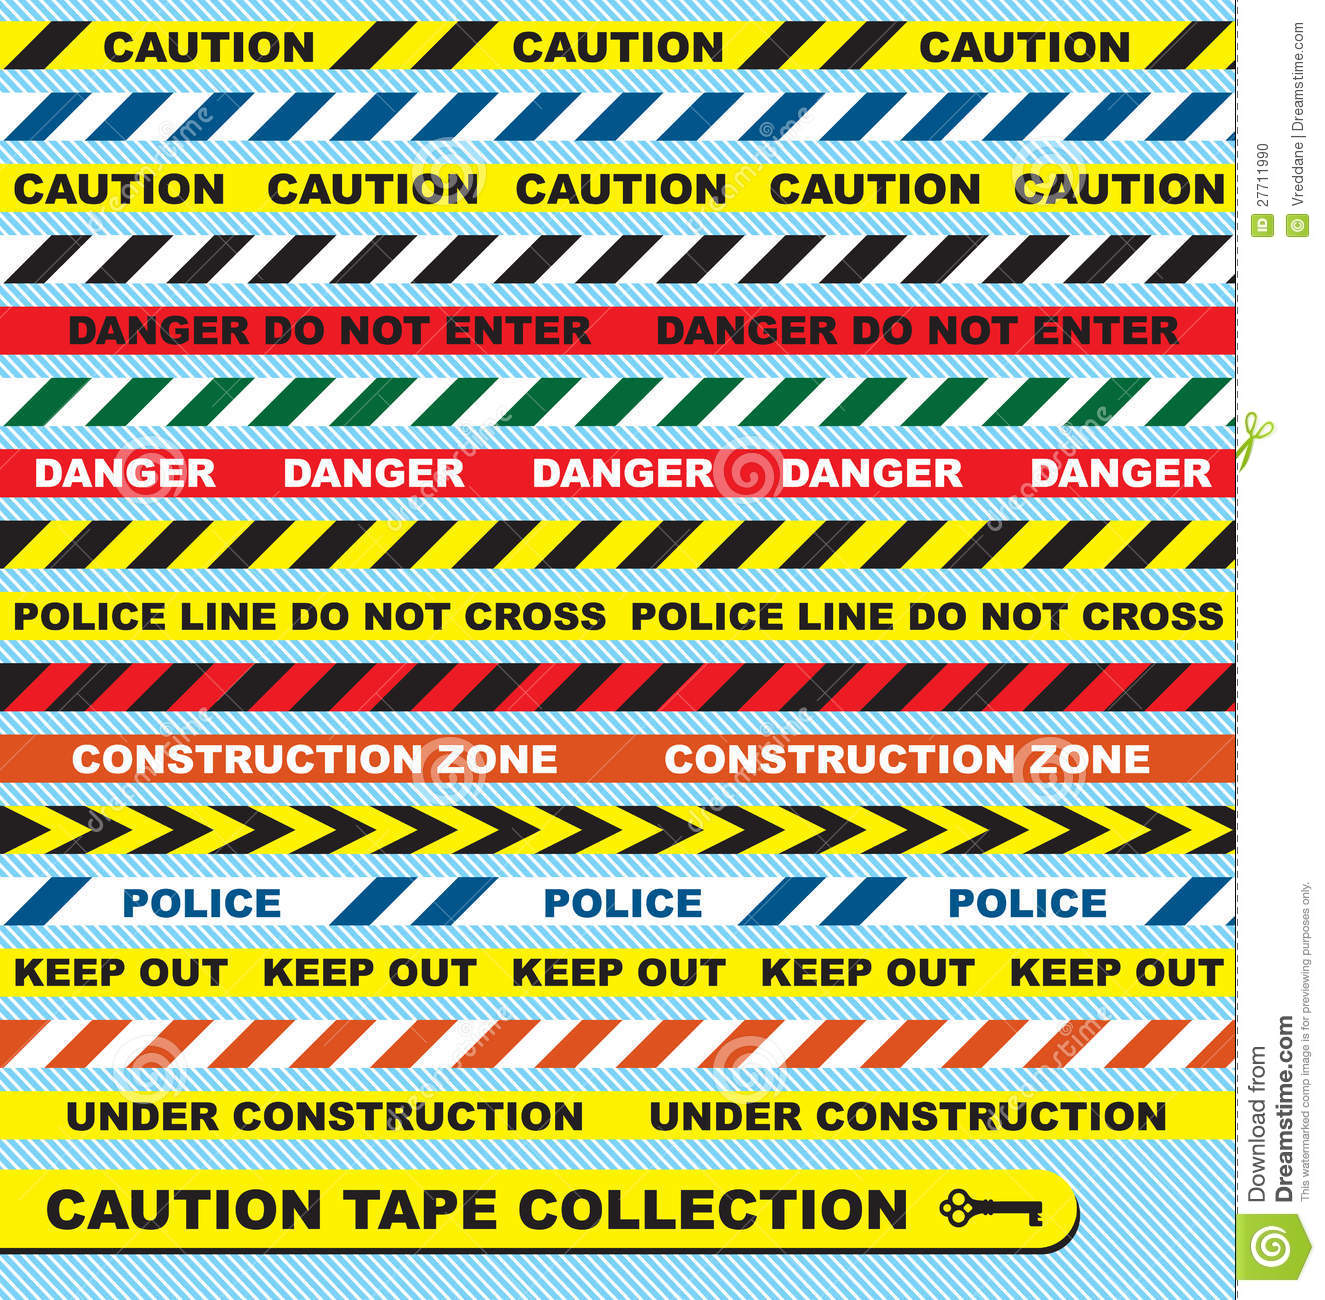 Construction Zone Tape Vector set: caution tape